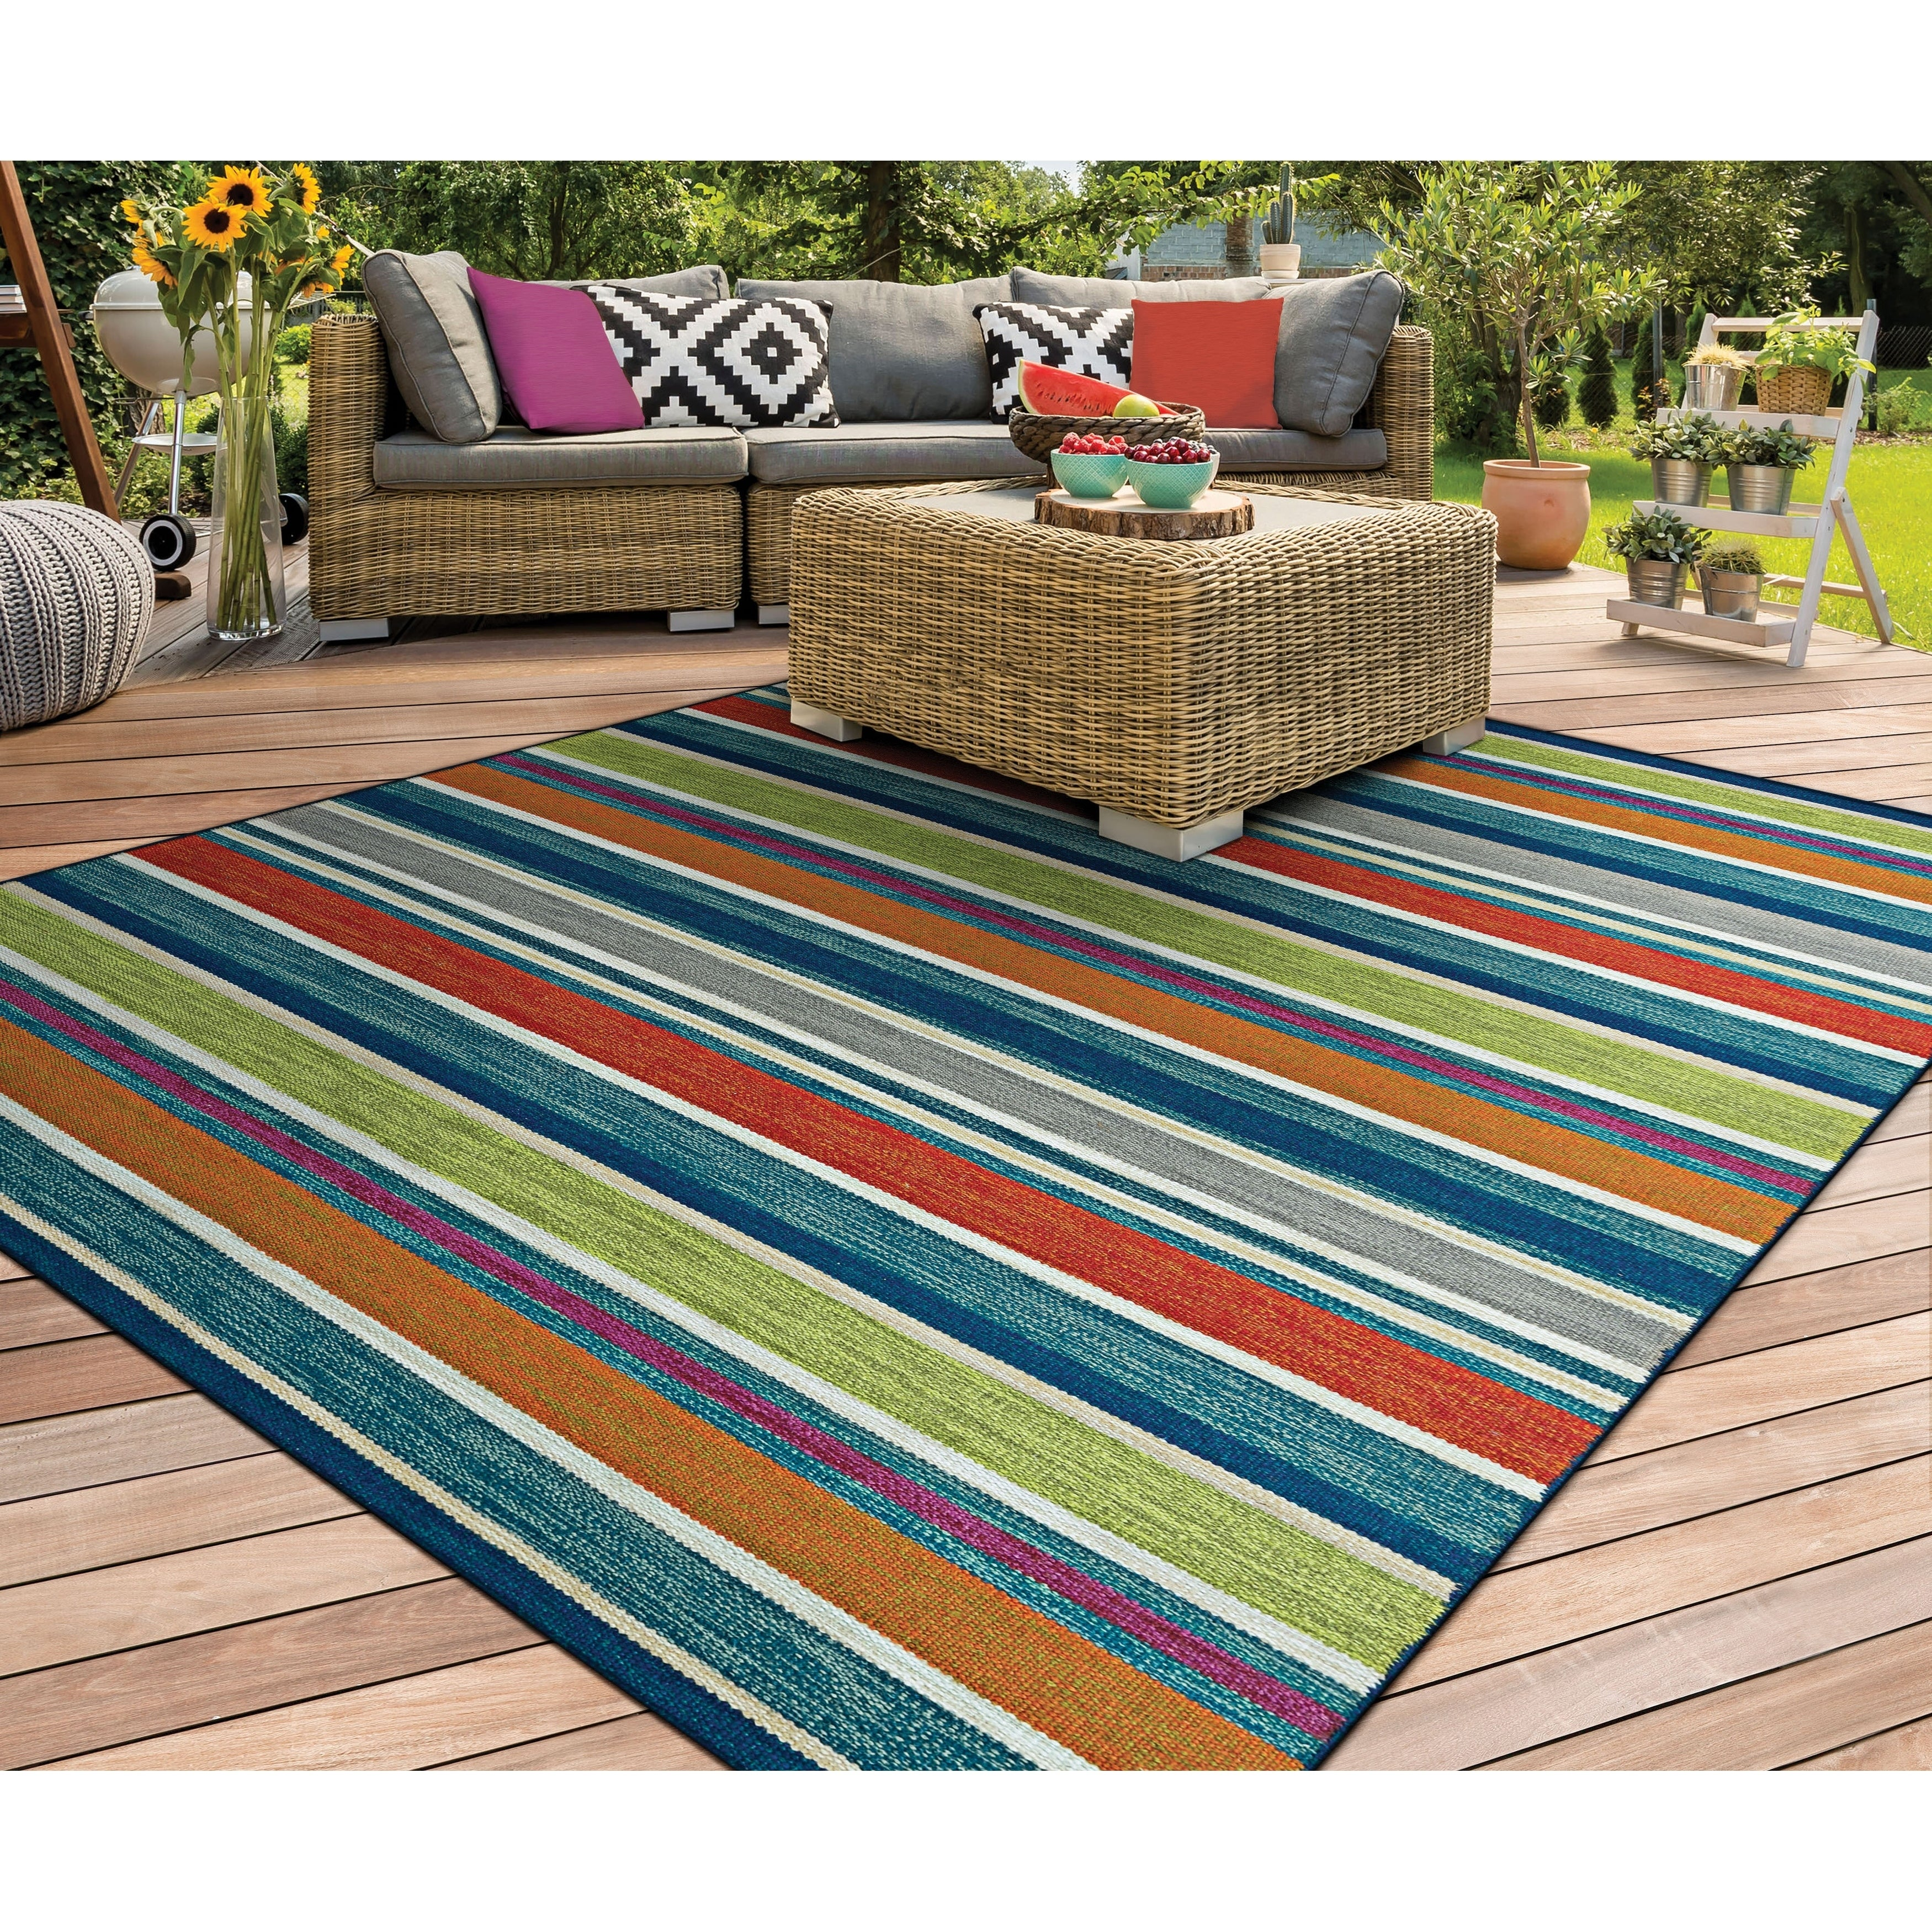 The Rug Market Sulton Green Area Rug  Size 2x3